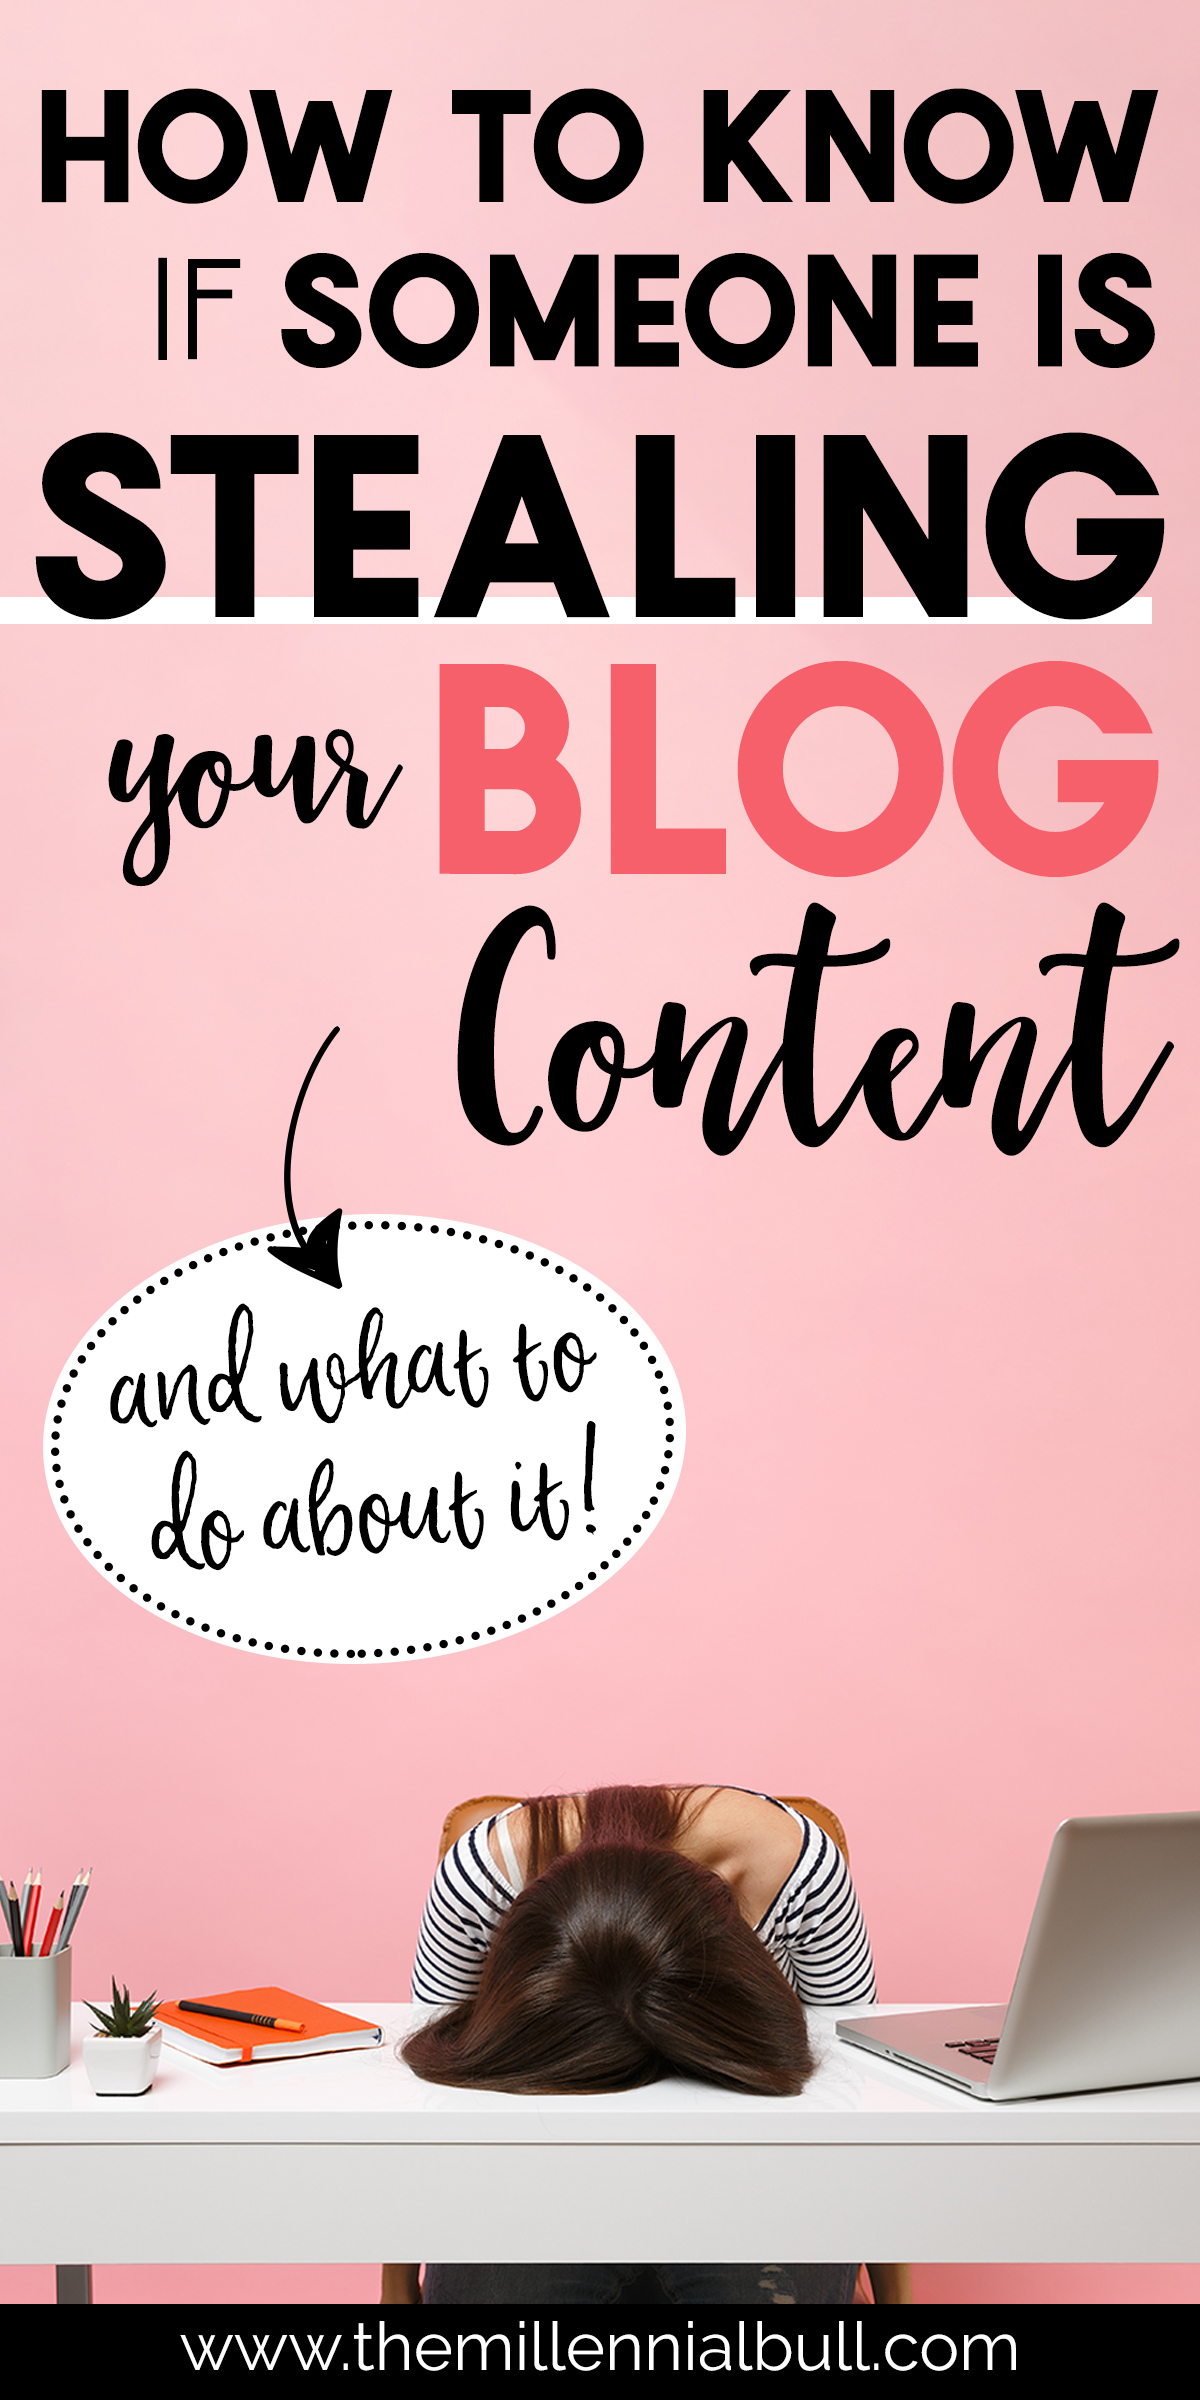 stealing your blog content pin - How To Know If Someone Is Stealing Your Blog Content